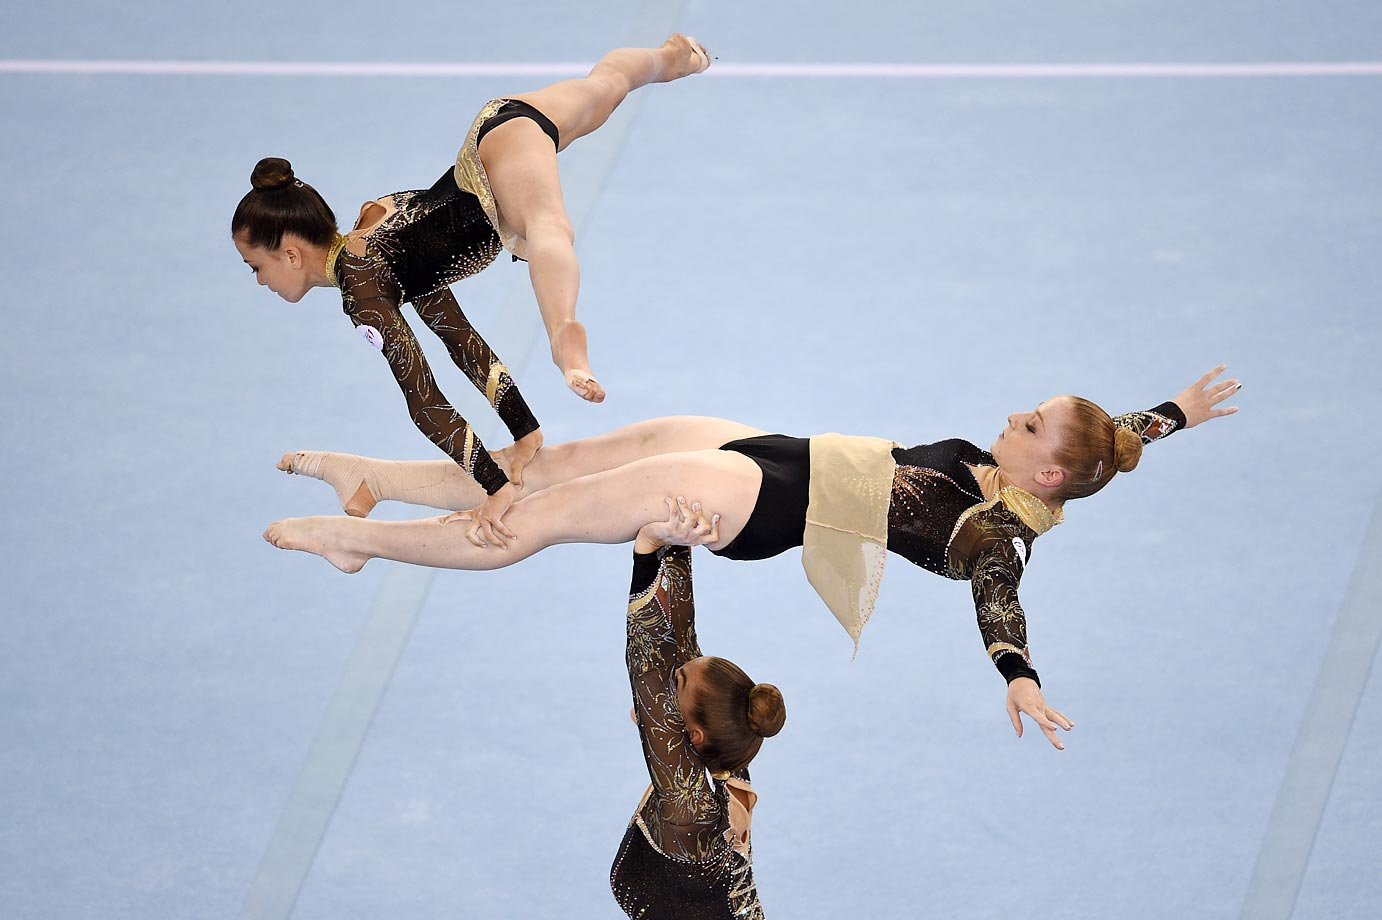 Tiphanie Bonnet, Agathe Meunier and Laura Viaud of France compete during the 1st European Olympic Games 2015.